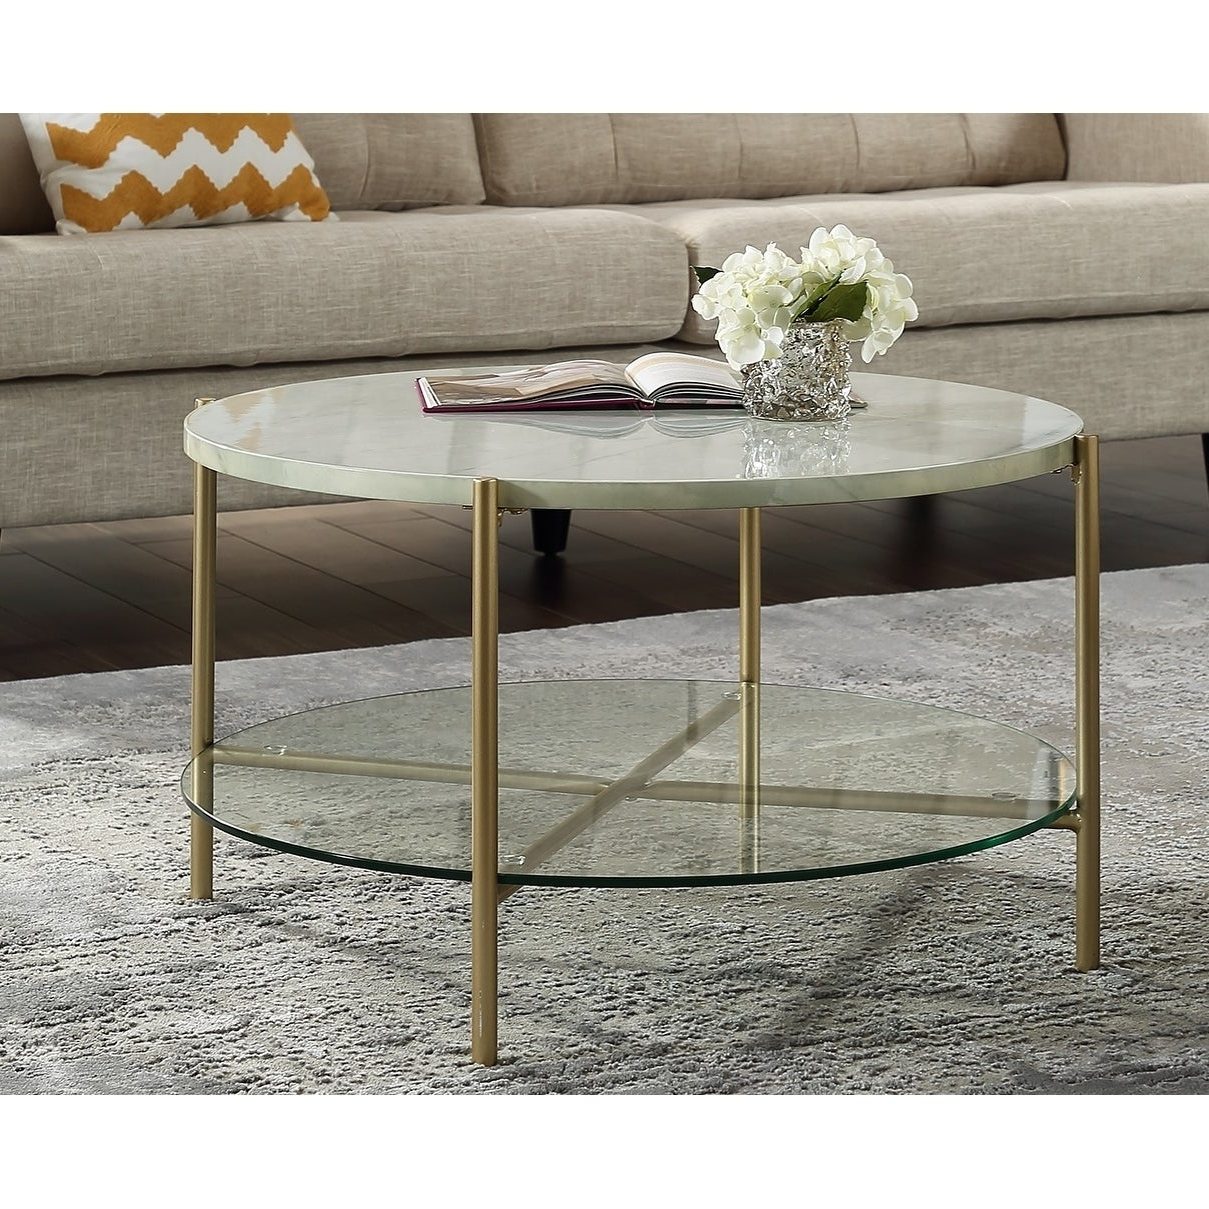 Silver Orchid 32 Inch Ipsen Round Coffee Table, Modern, Faux Marble Accent Cocktail Table For Living Room – 32 X 32 X 17h With Well Known Silver Orchid Ipsen Round Coffee Tables With X Base (View 16 of 20)